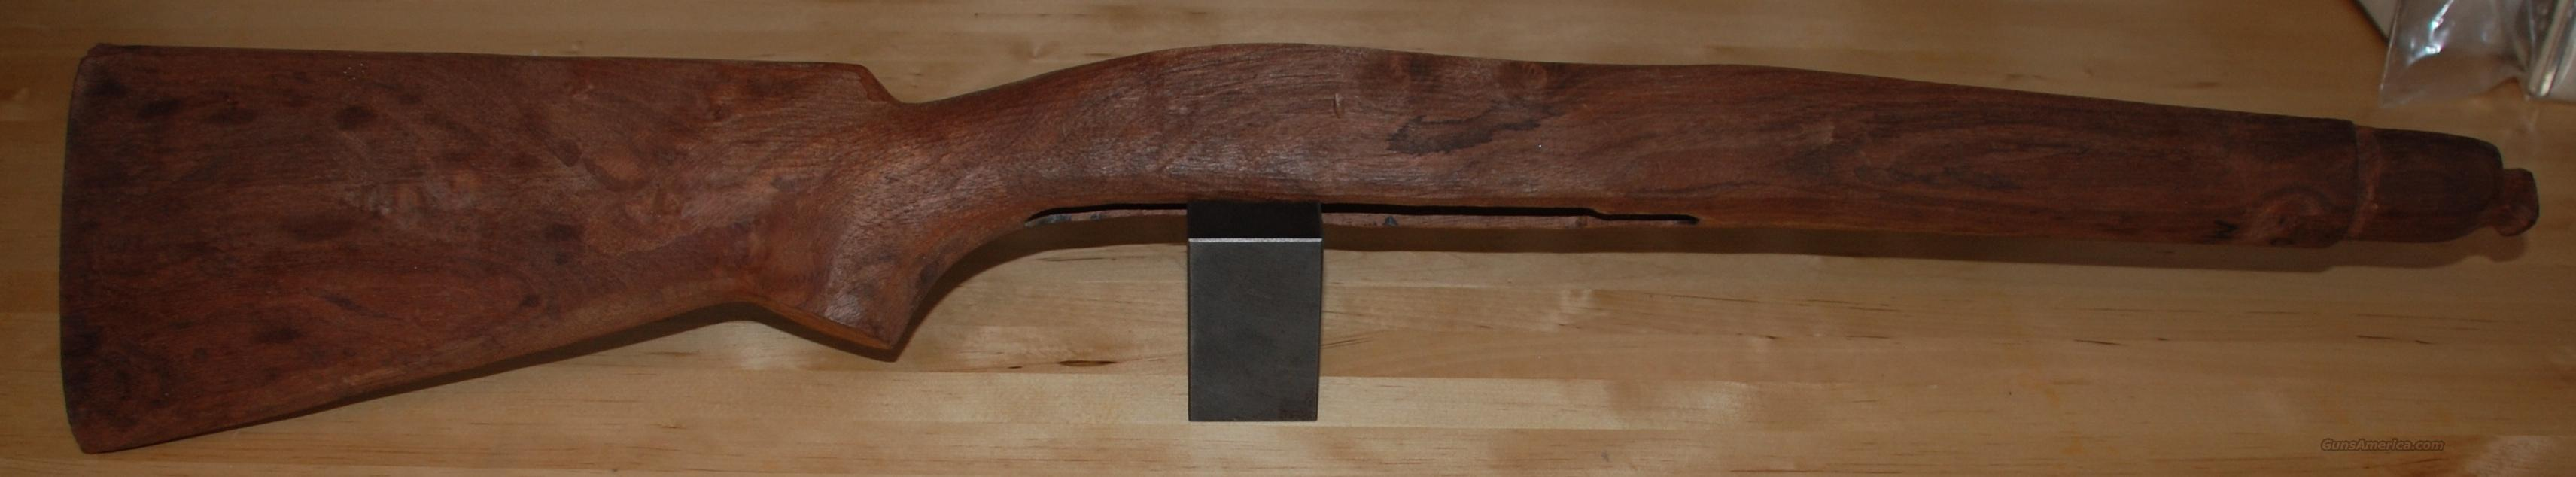 Springfield M22 Stock Unfinished by Boyds  Non-Guns > Gunstocks, Grips & Wood